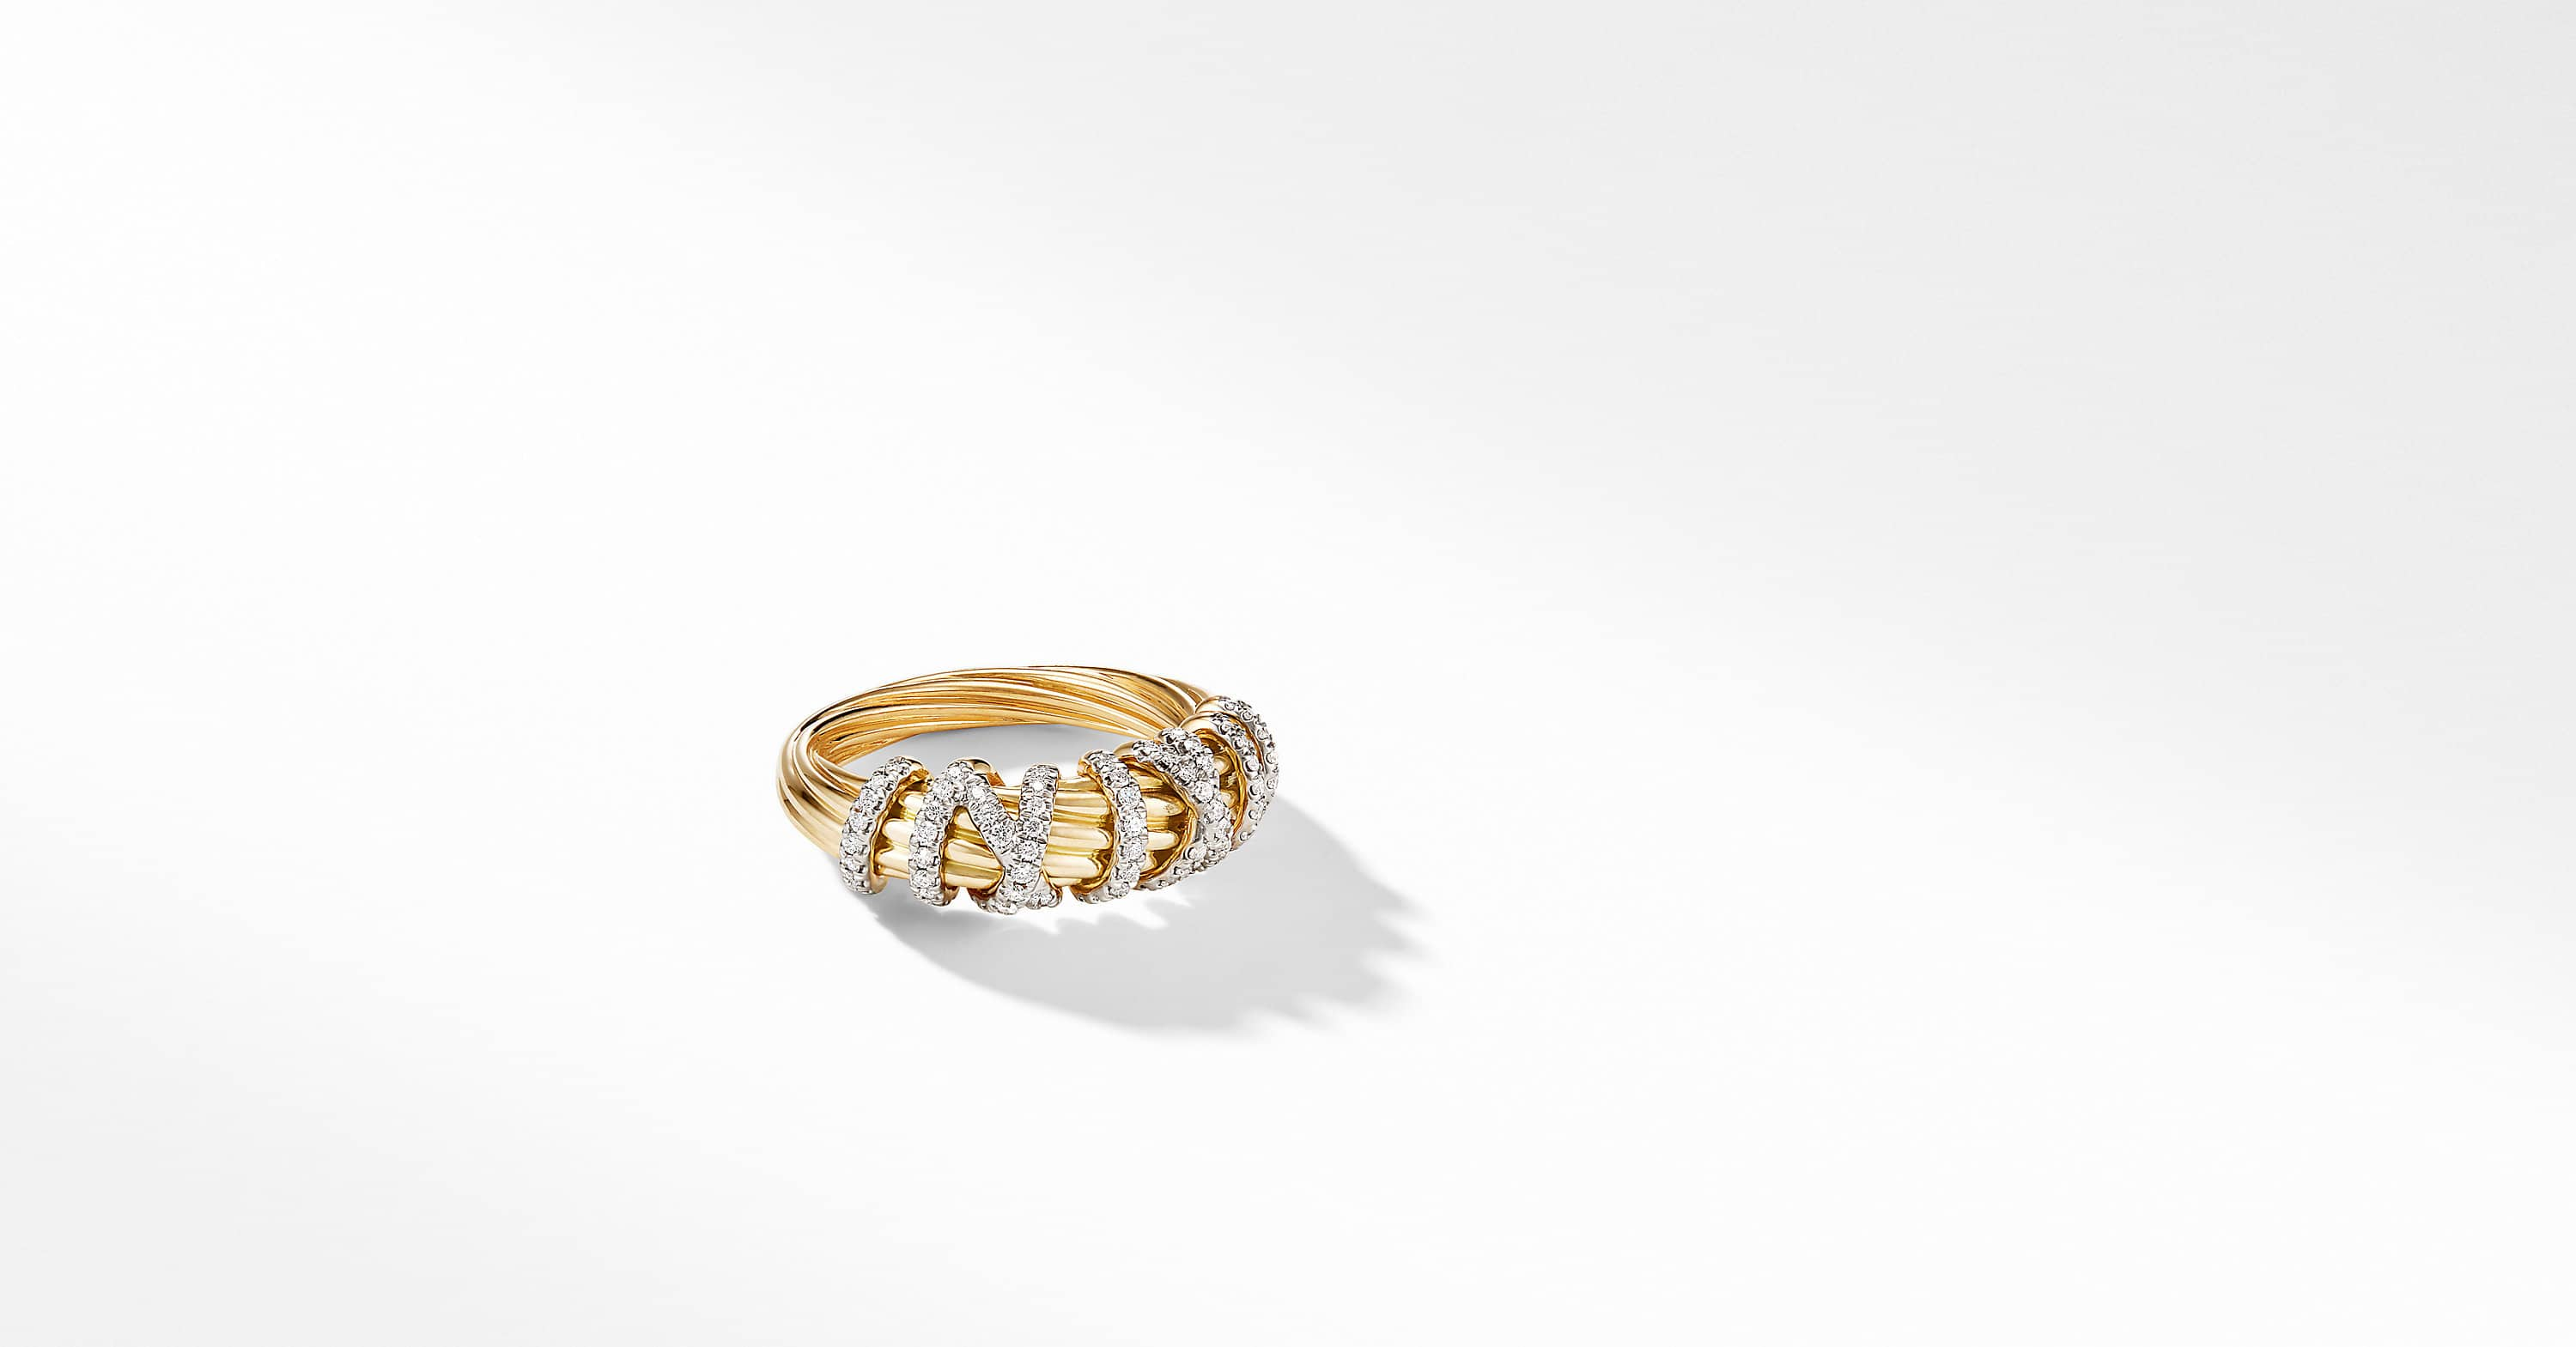 Helena Small Ring in 18K Yellow Gold with Diamonds